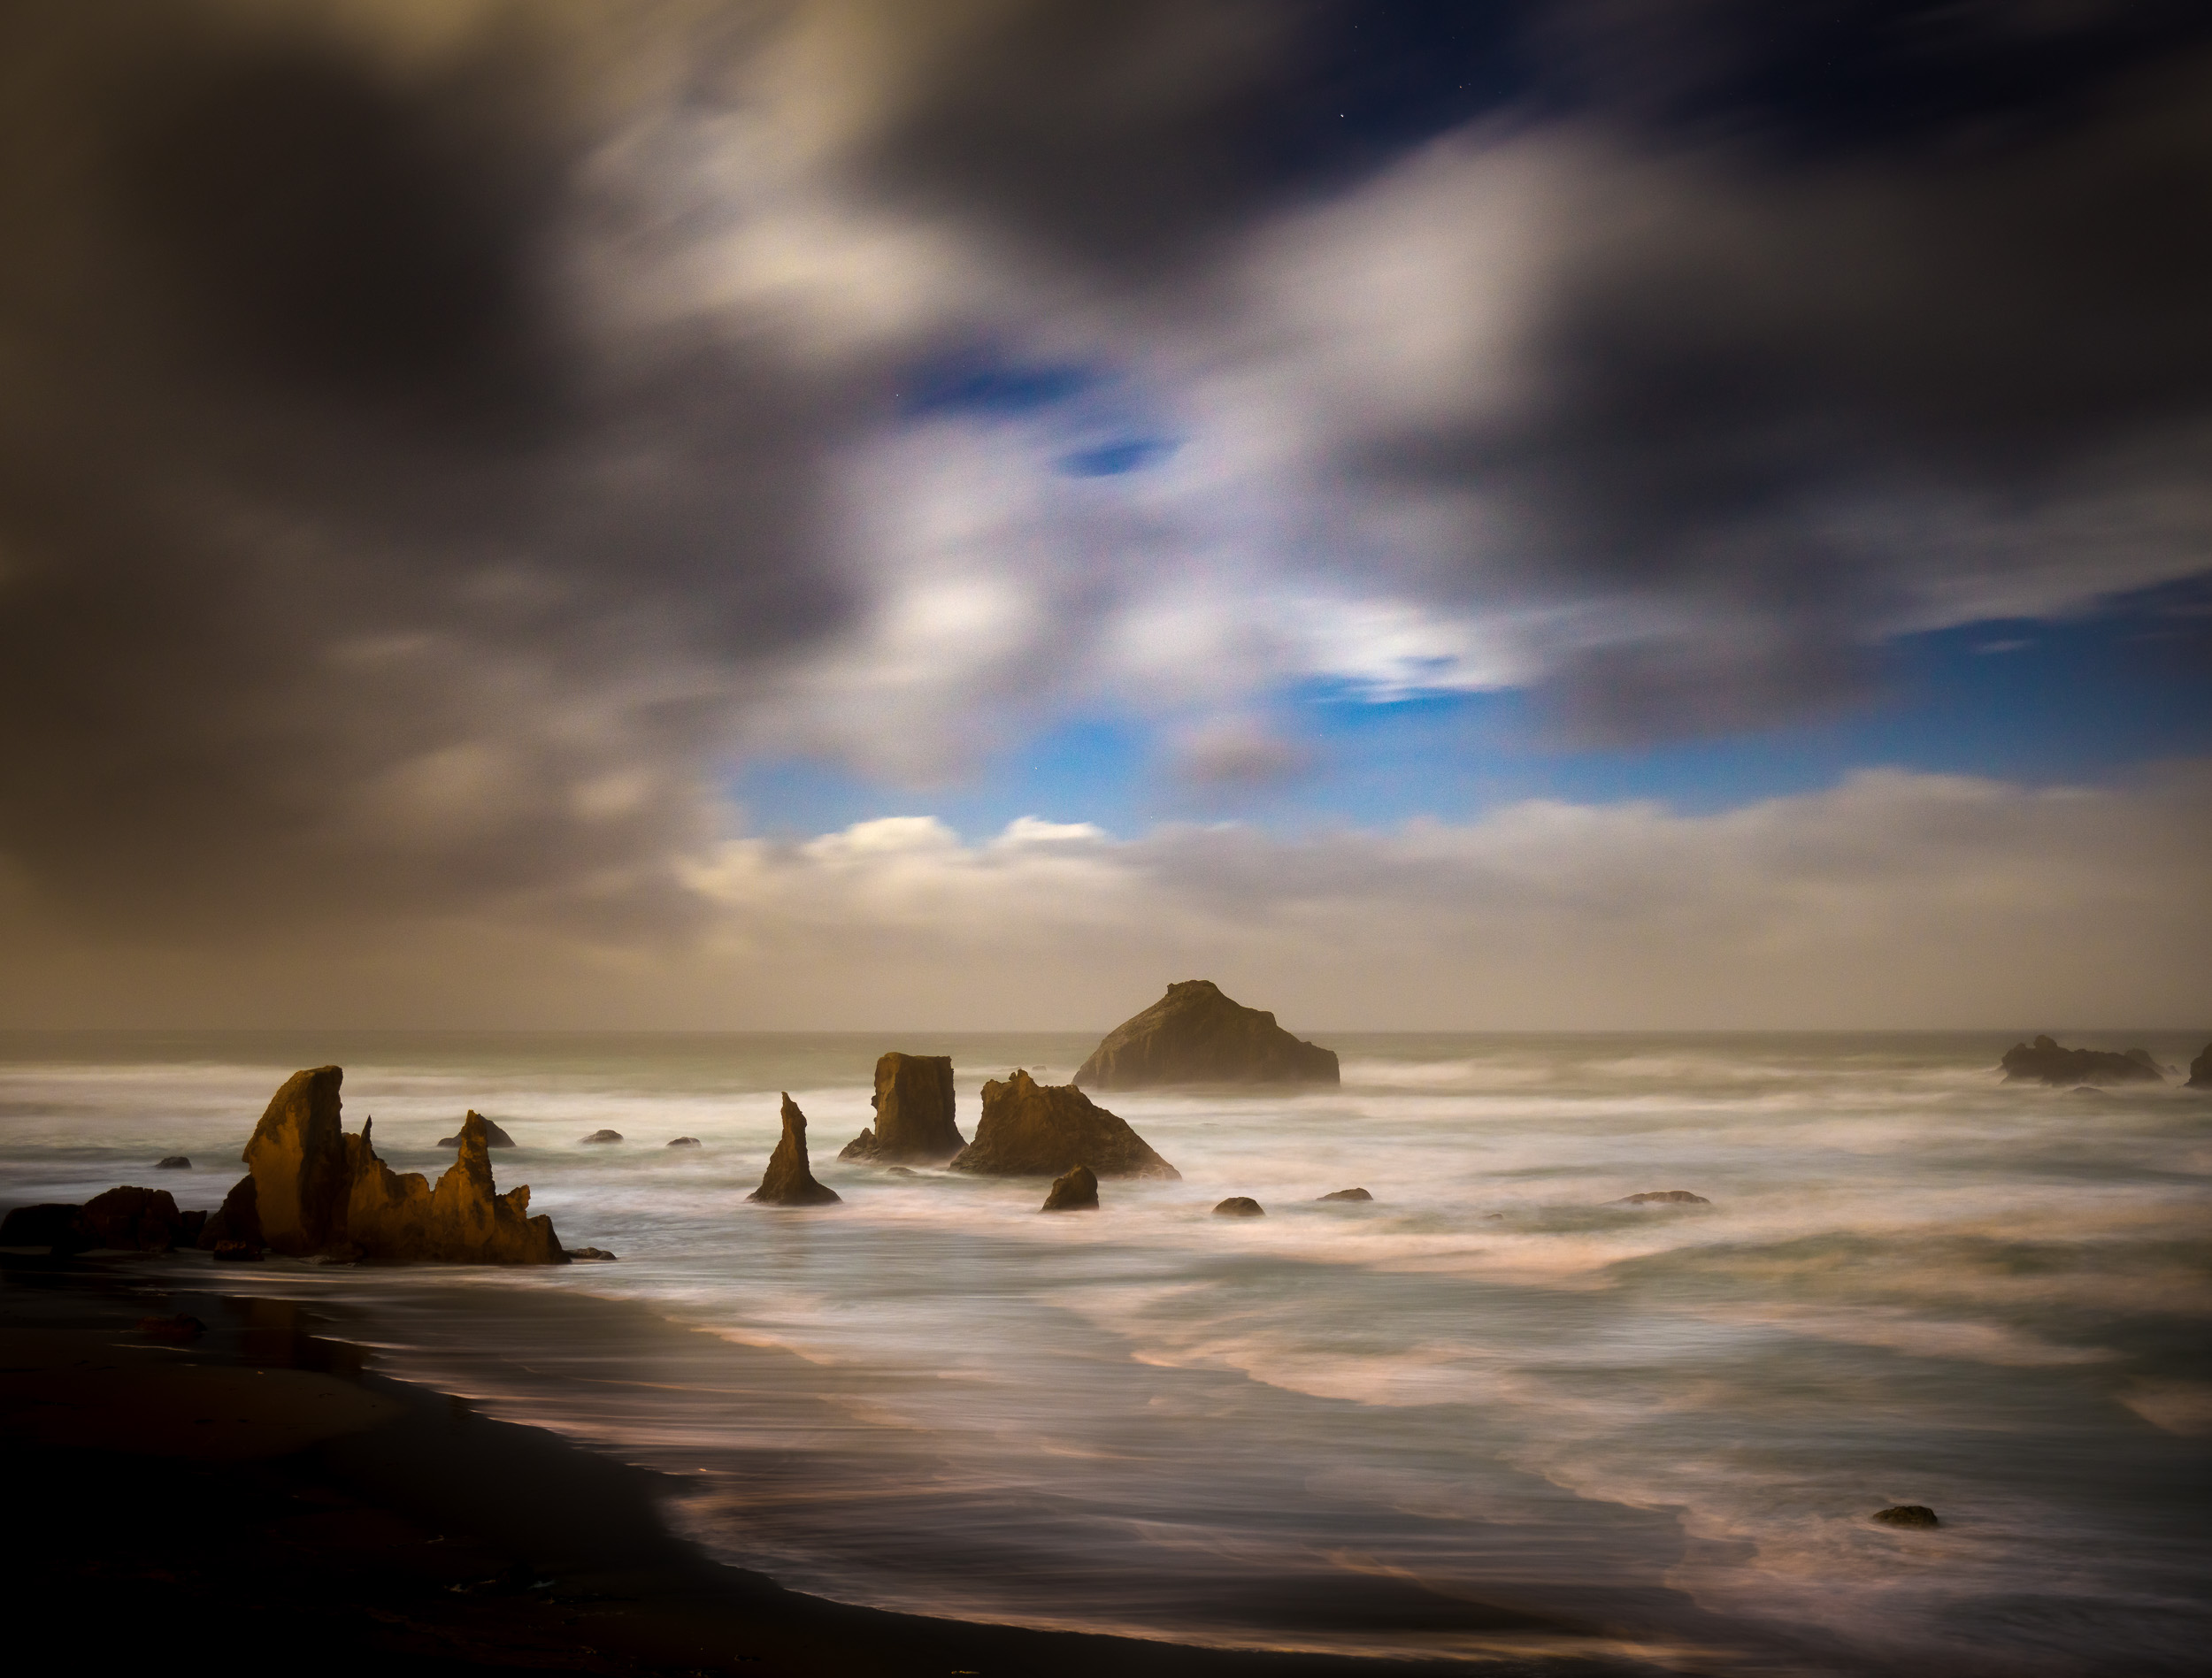 muench-photo-workshop-oregon-coast-6159.jpg